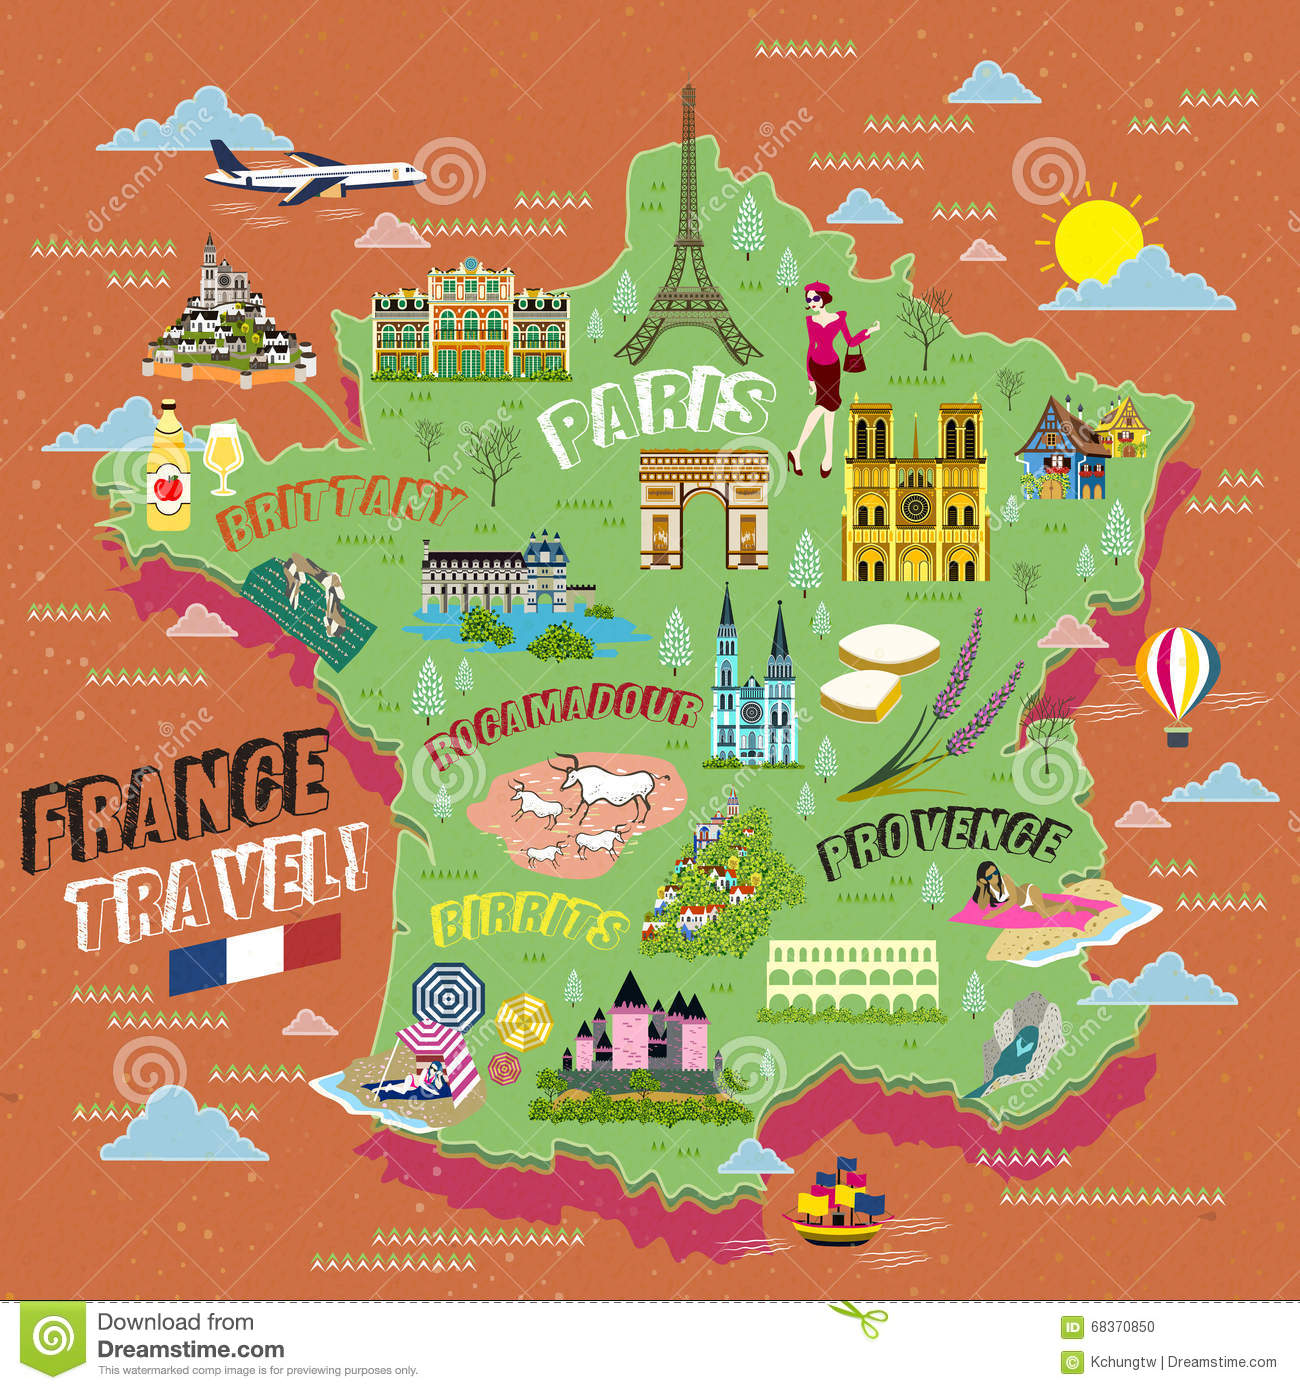 France Travel Map Vector Image 68370850 – France Tourist Attractions Map